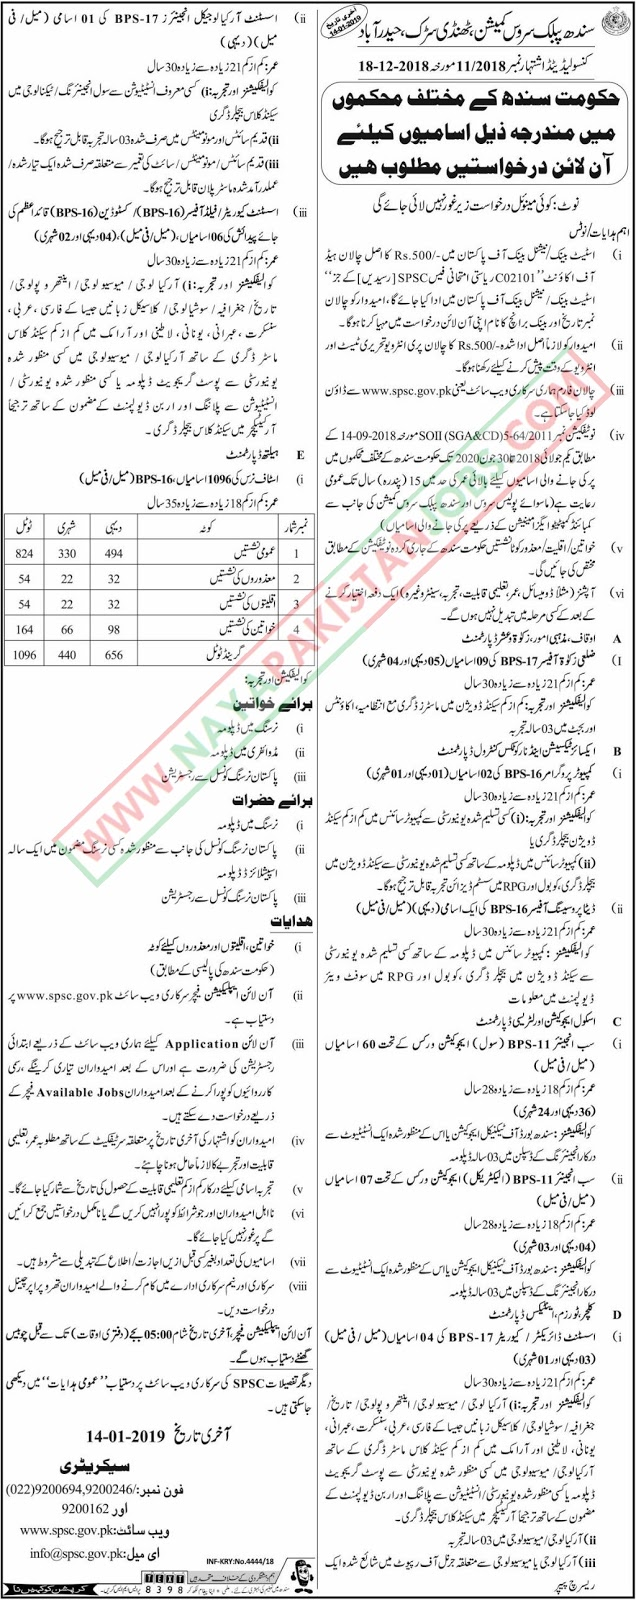 SPSC Jobs 23 Dec 2018, Sindh Public Service Commission Jobs, SPSC New Jobs 2019